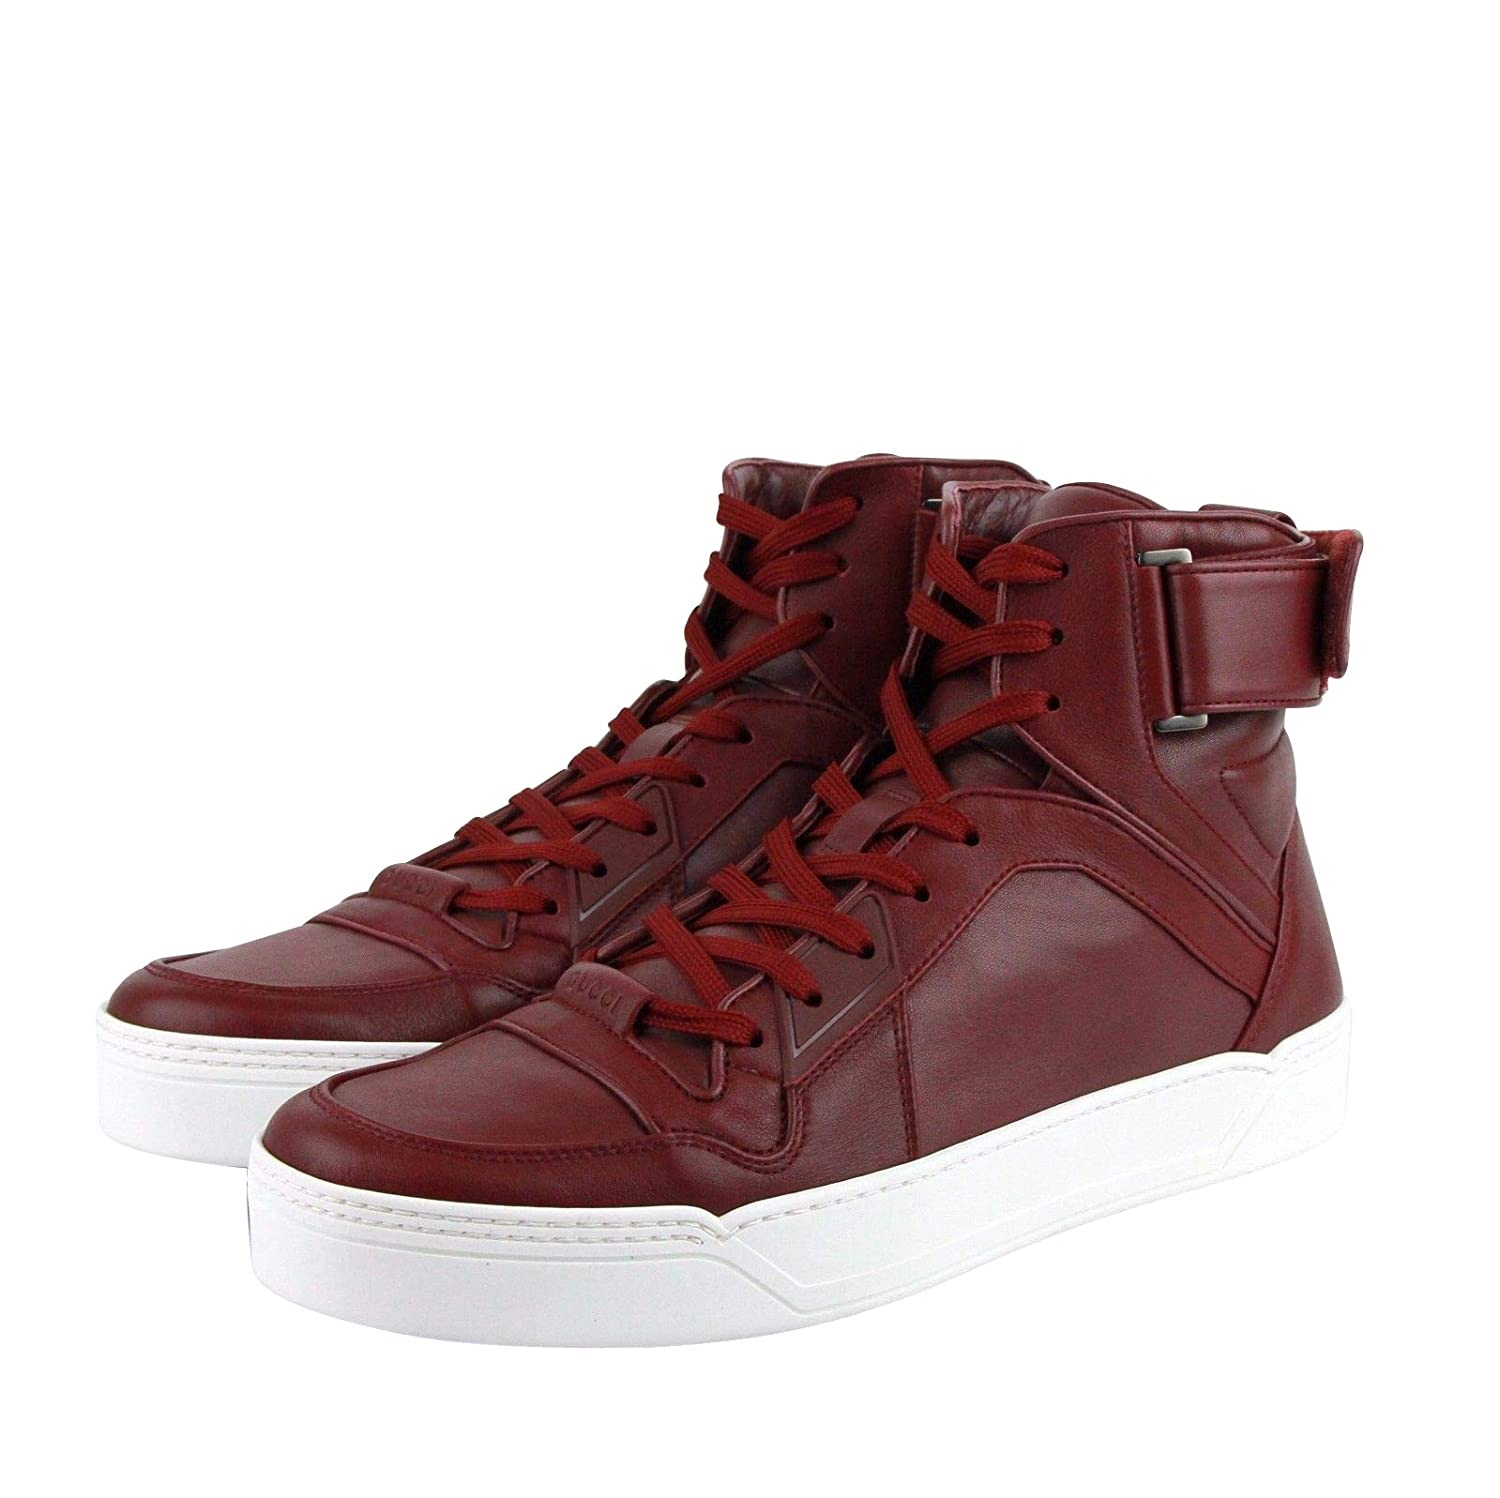 9ca41ffe5702 Amazon.com  Gucci High Top Strong Dark Red Leather Sneakers with Strap  386738 6148  Shoes